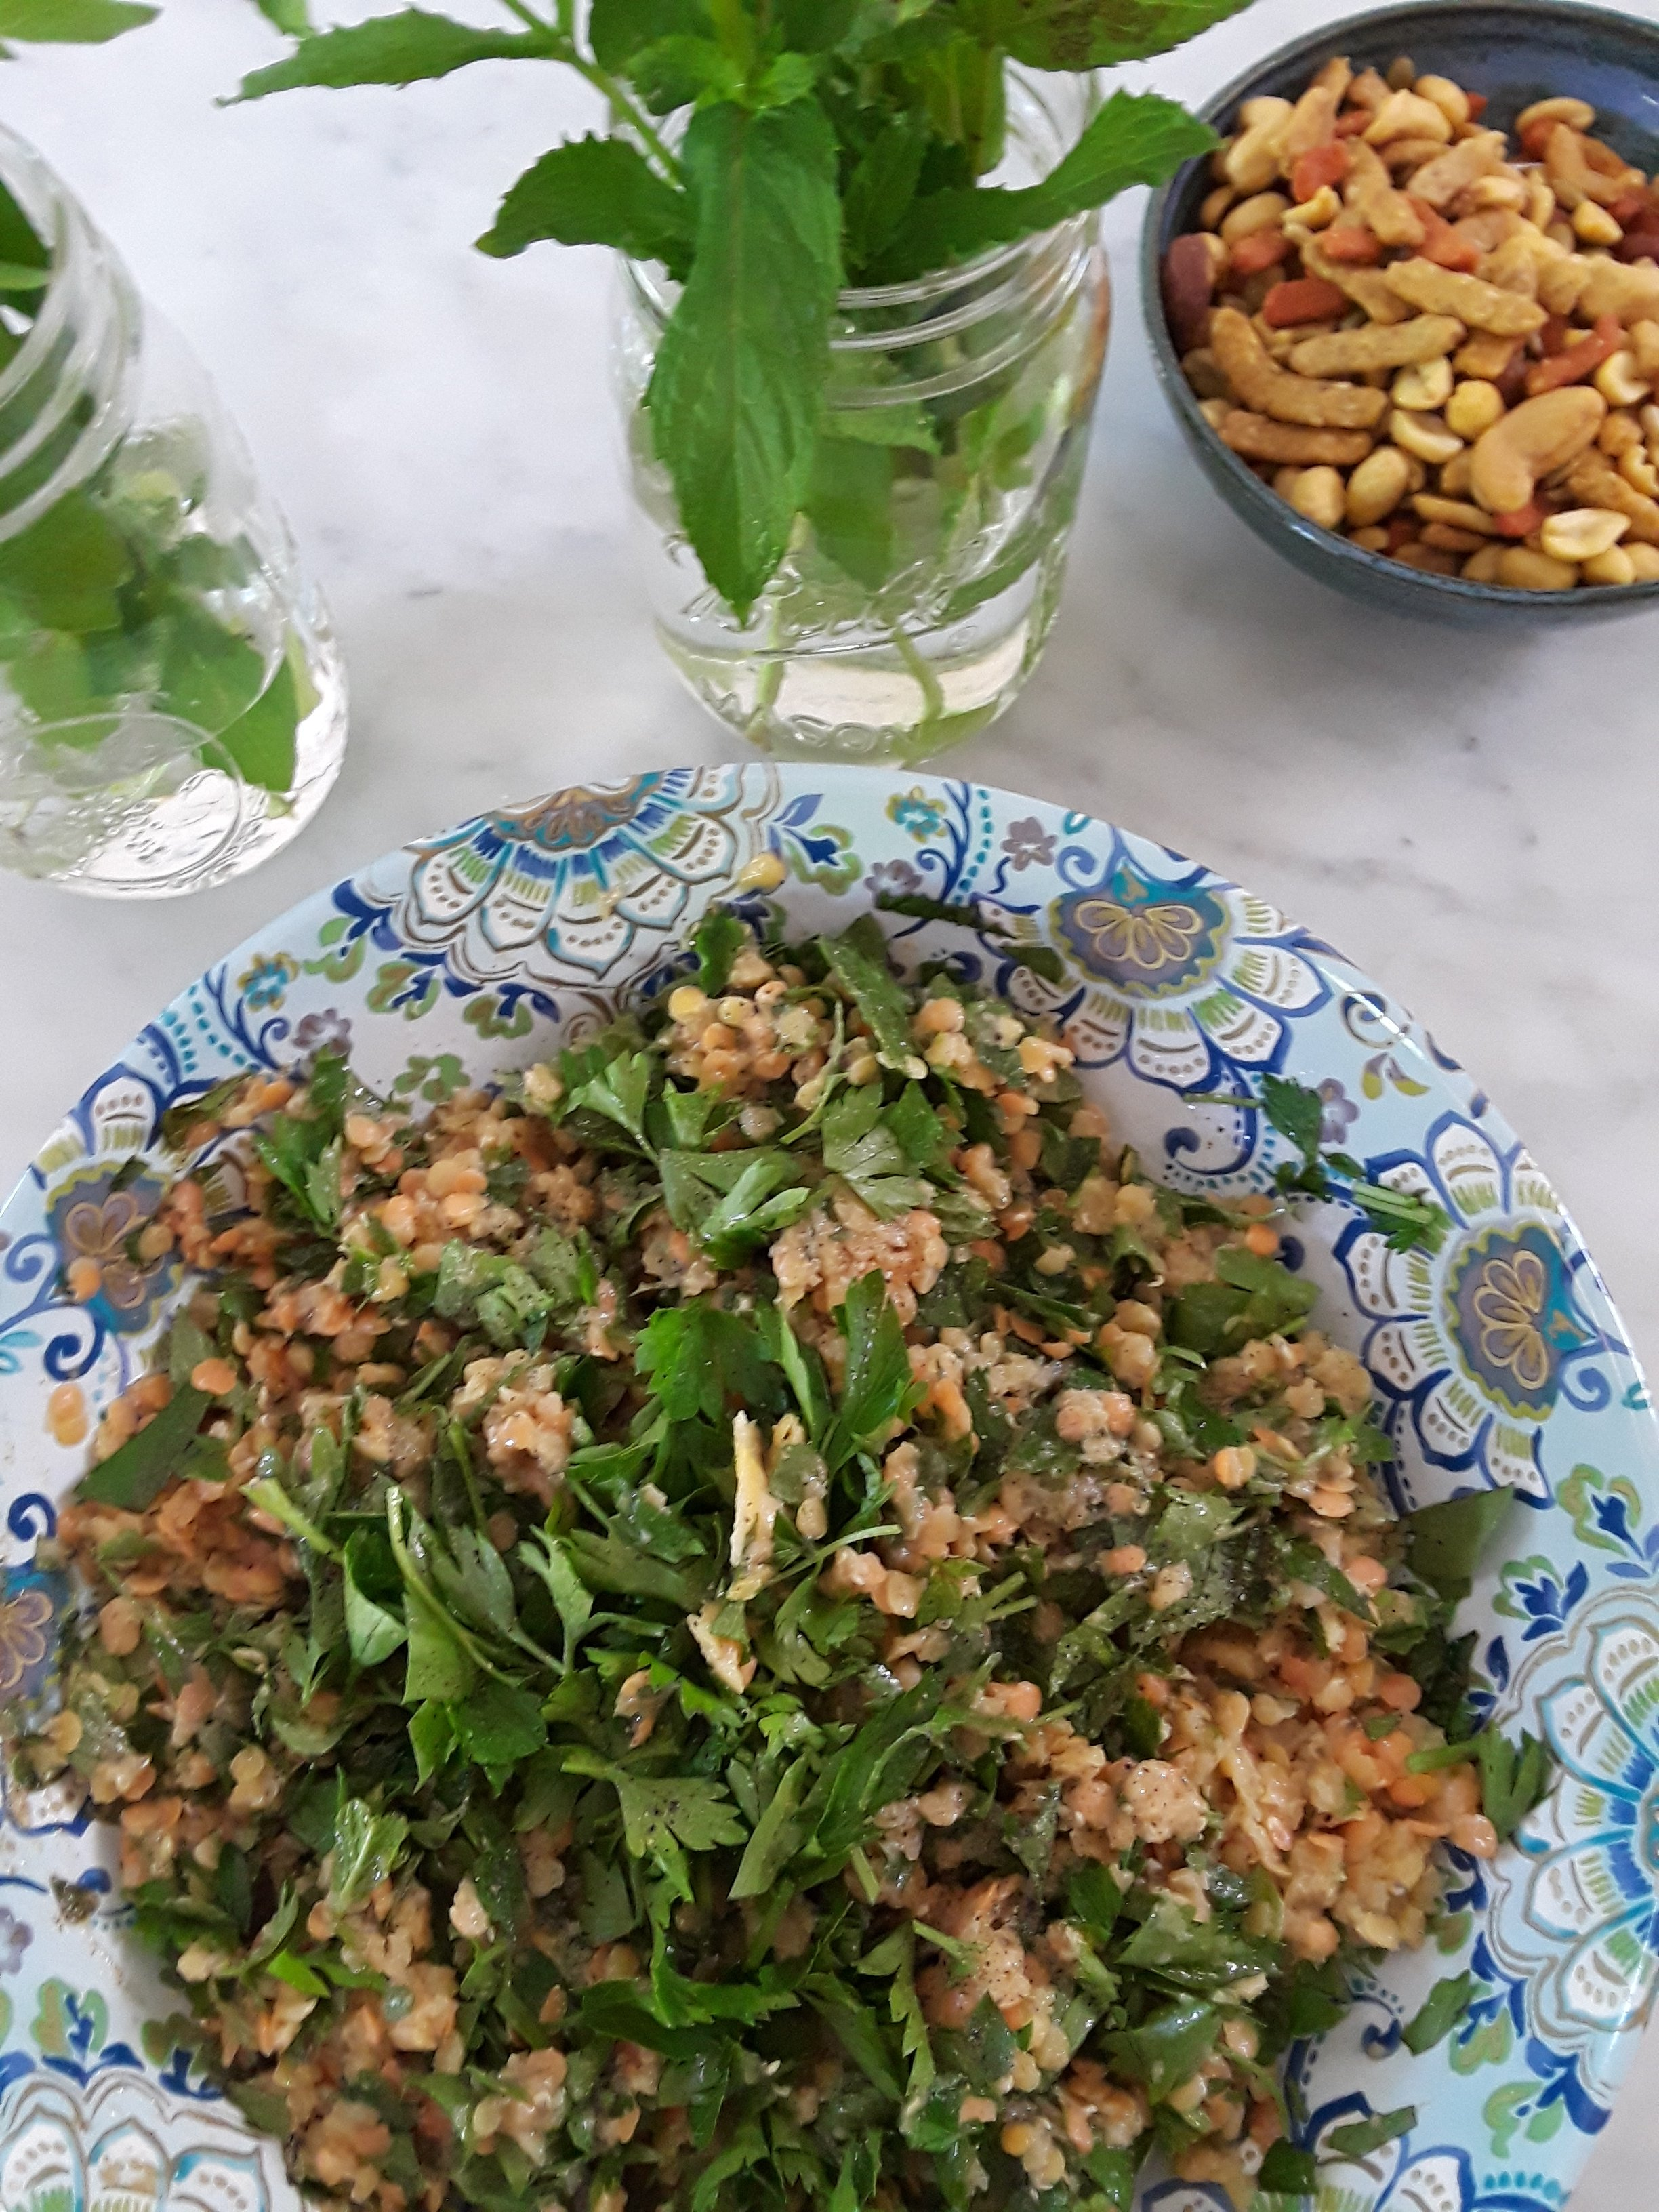 serving bowl with blue paisley pattern heaping with lentil salad made with herbs